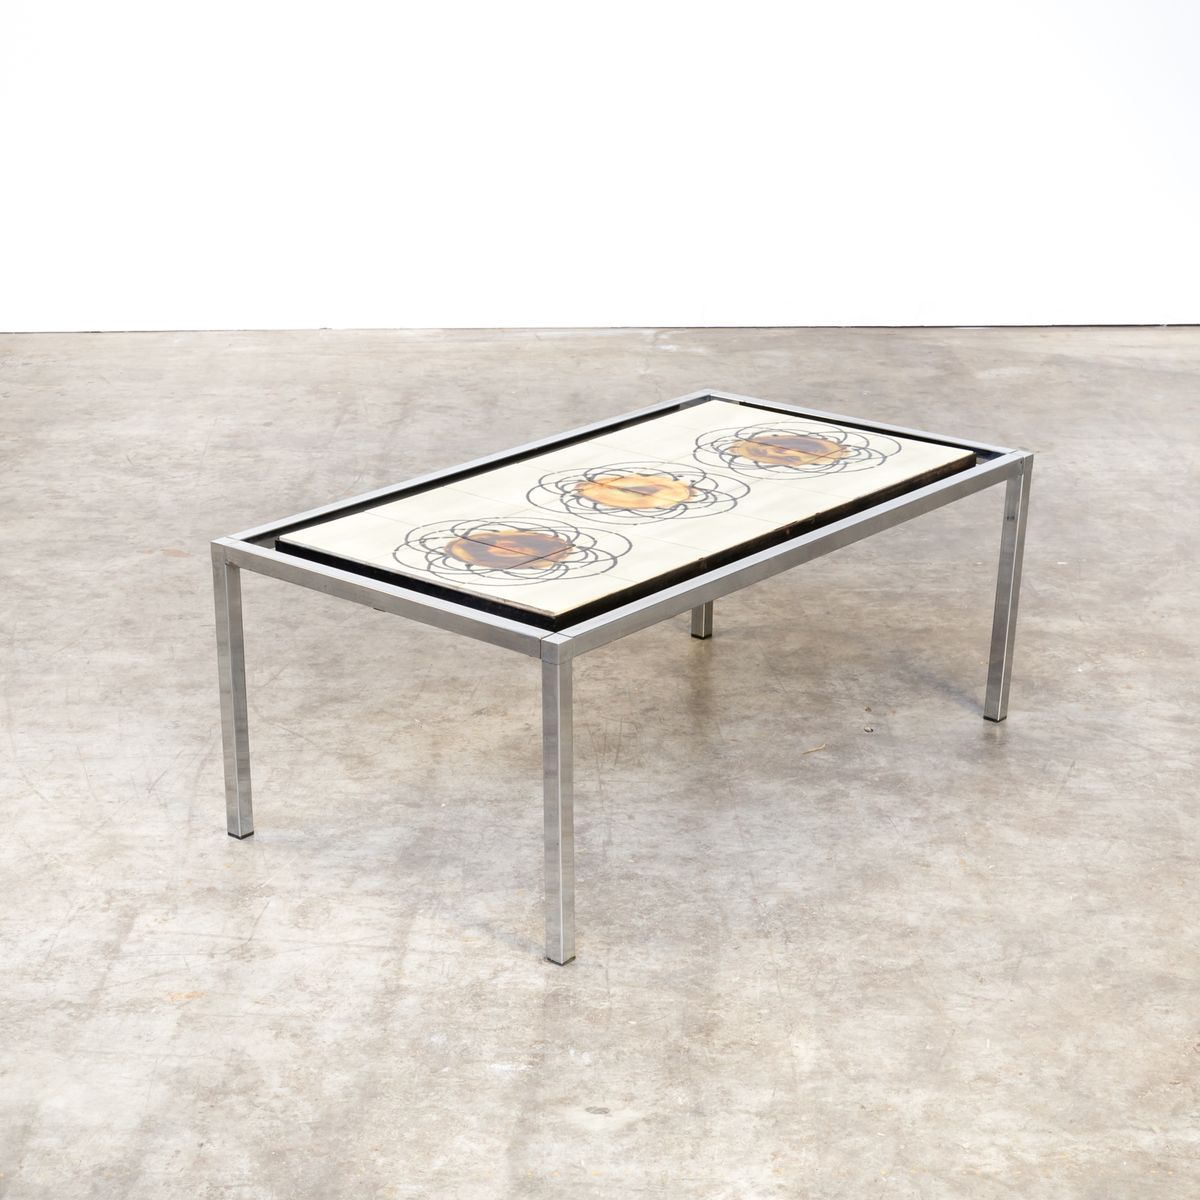 Hand Painted Coffee Table By Juliette Belarti, 1960s 10. $1,061.00. Price  Per Piece